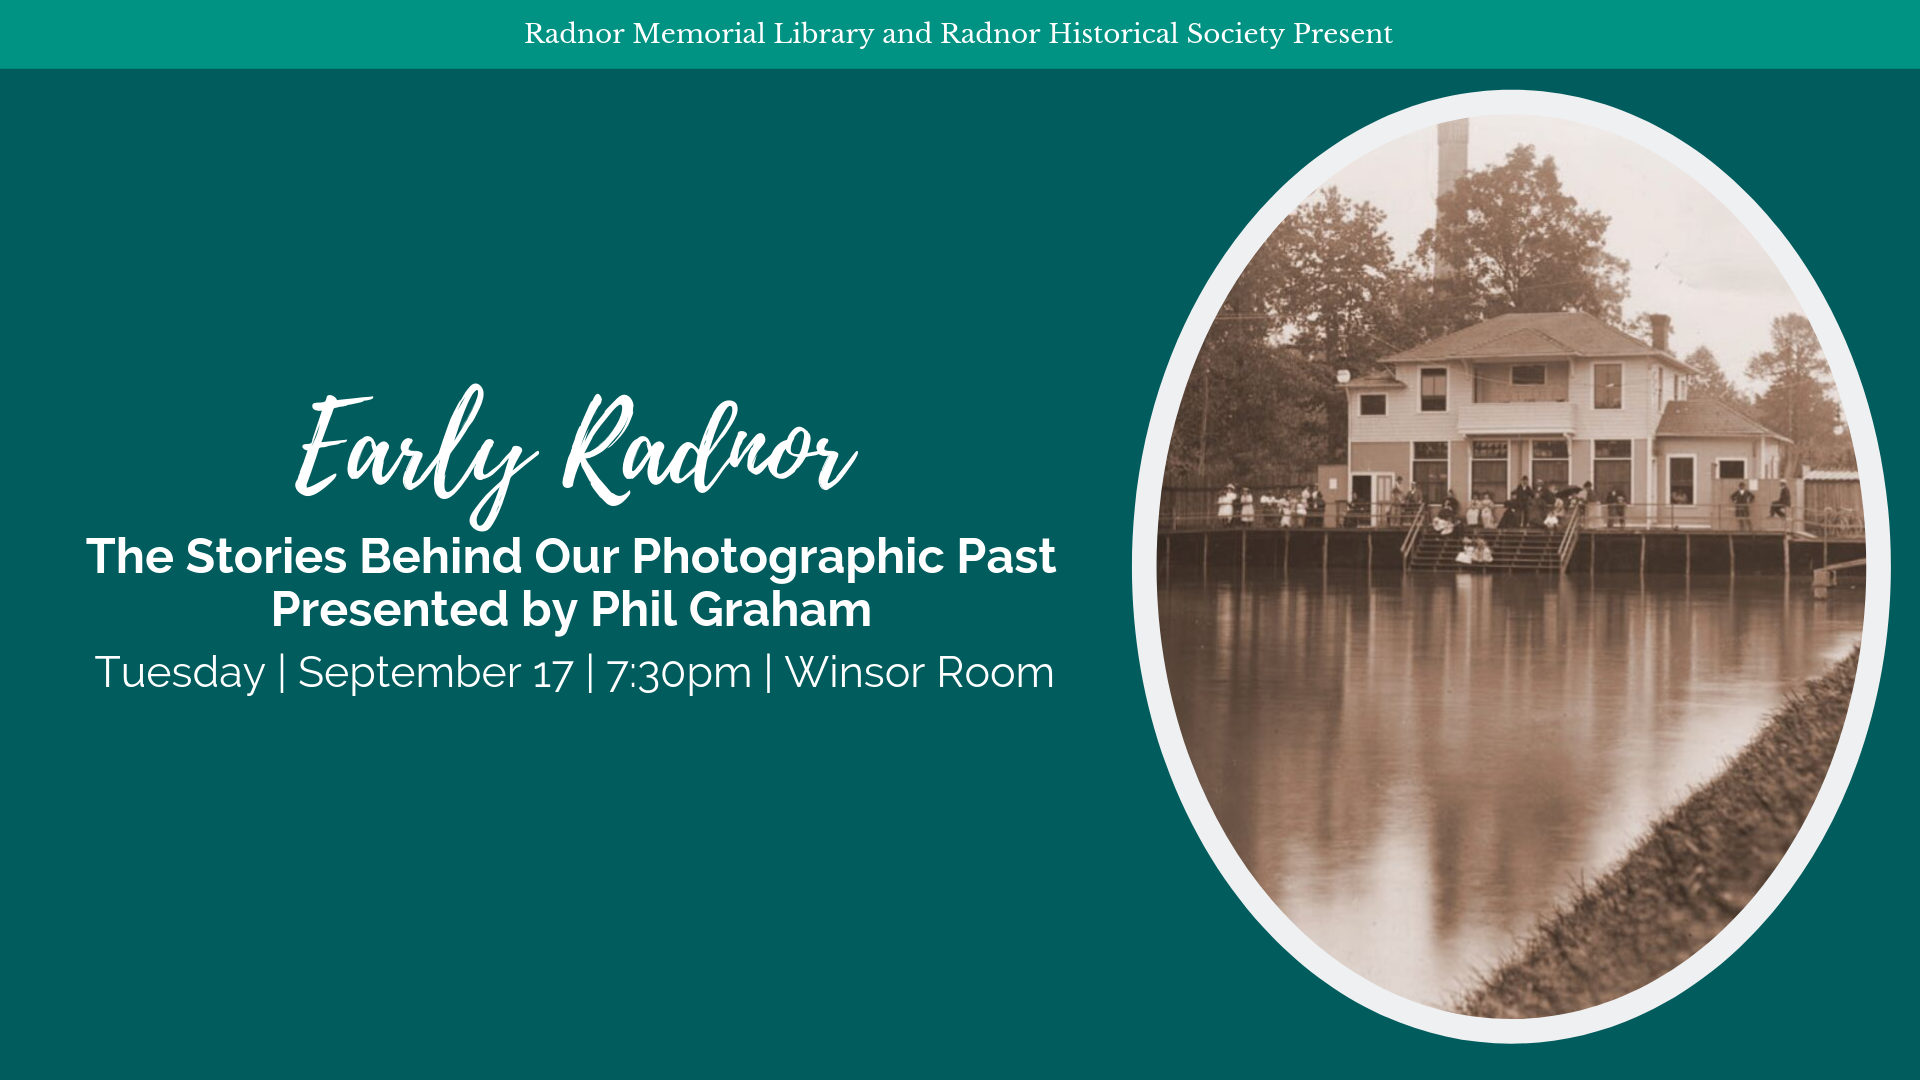 Early Radnor: The Stories Behind Our Photographic Past